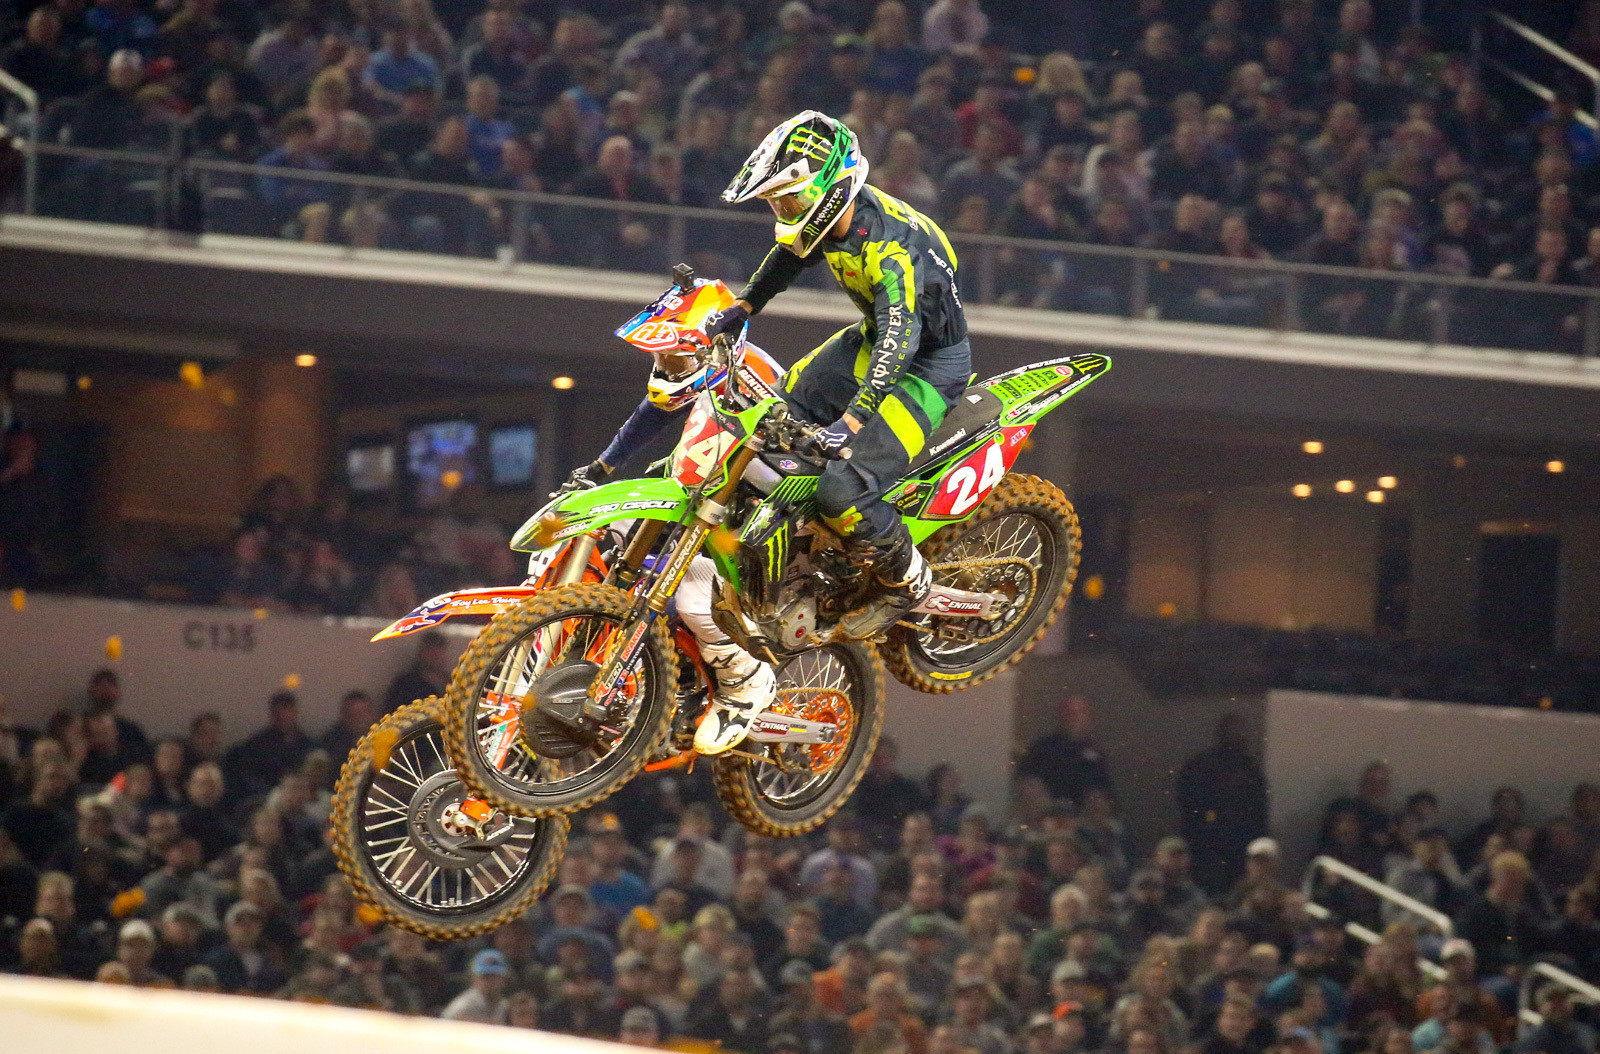 The second 250 heat featured some good action with Jordon Smith and Austin Forkner. Jordon took over the lead shortly after the start and led several laps, but Austin reeled him in. This was like watching a couple of the Alpha dogs in the class trying to assert dominance.